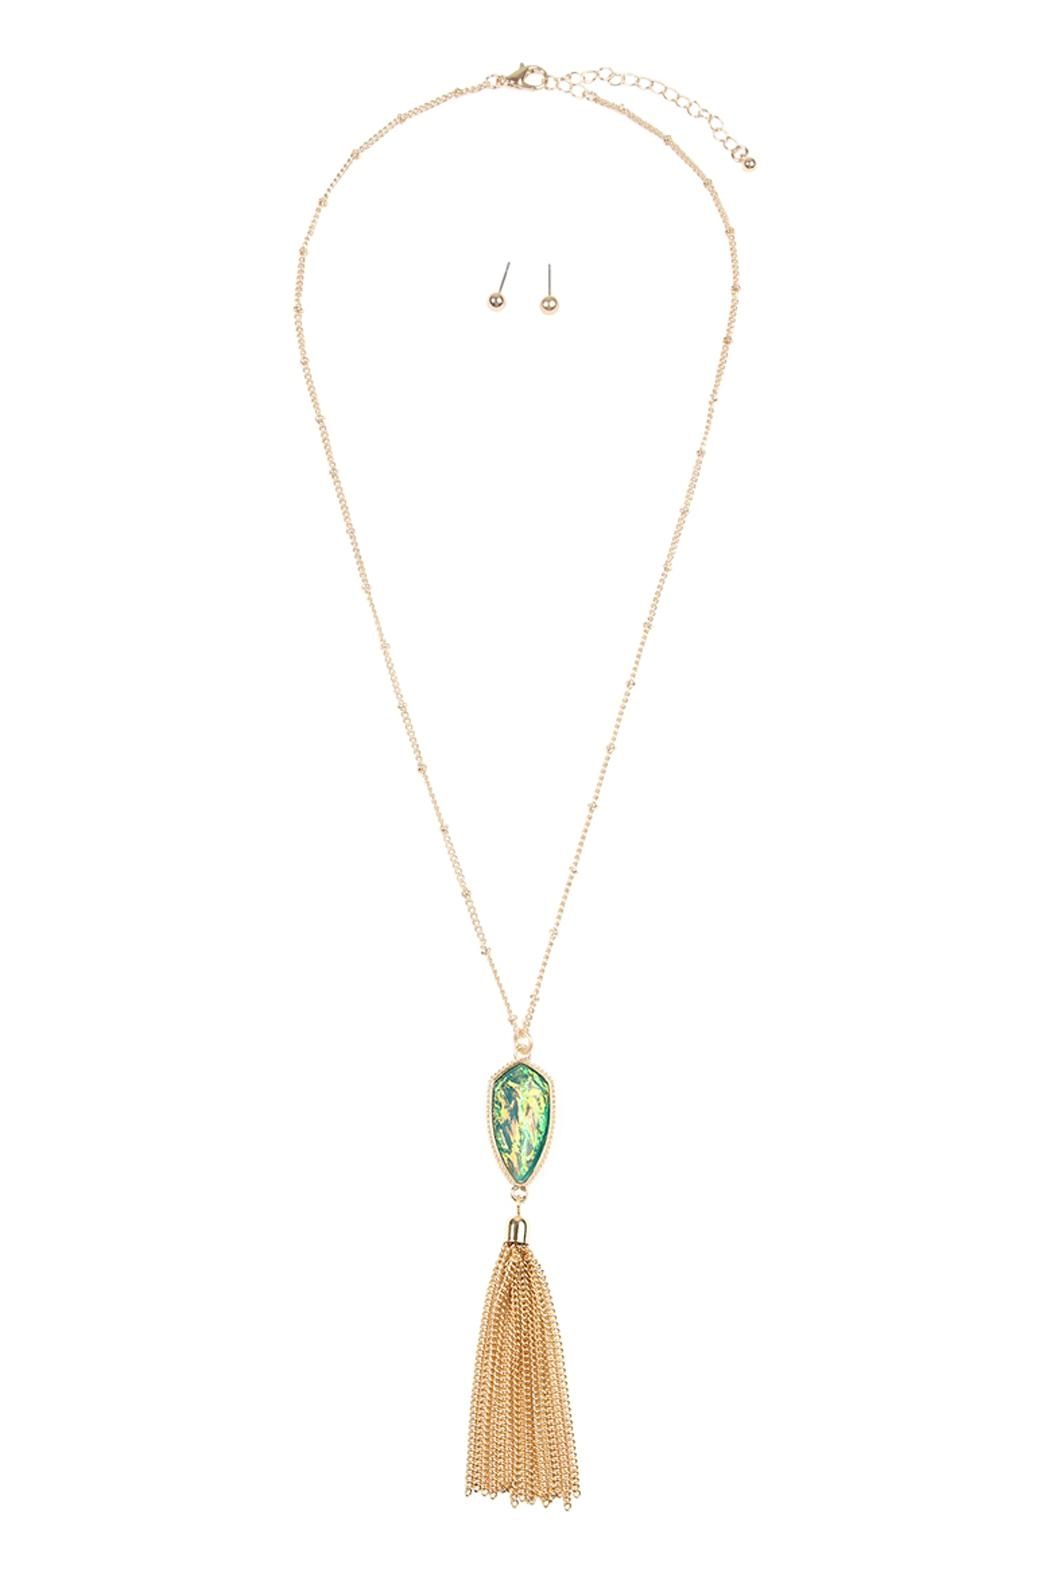 Riah Fashion Chain-Tassel-Necklace And Stud-Earrings-Set - Front Cropped Image